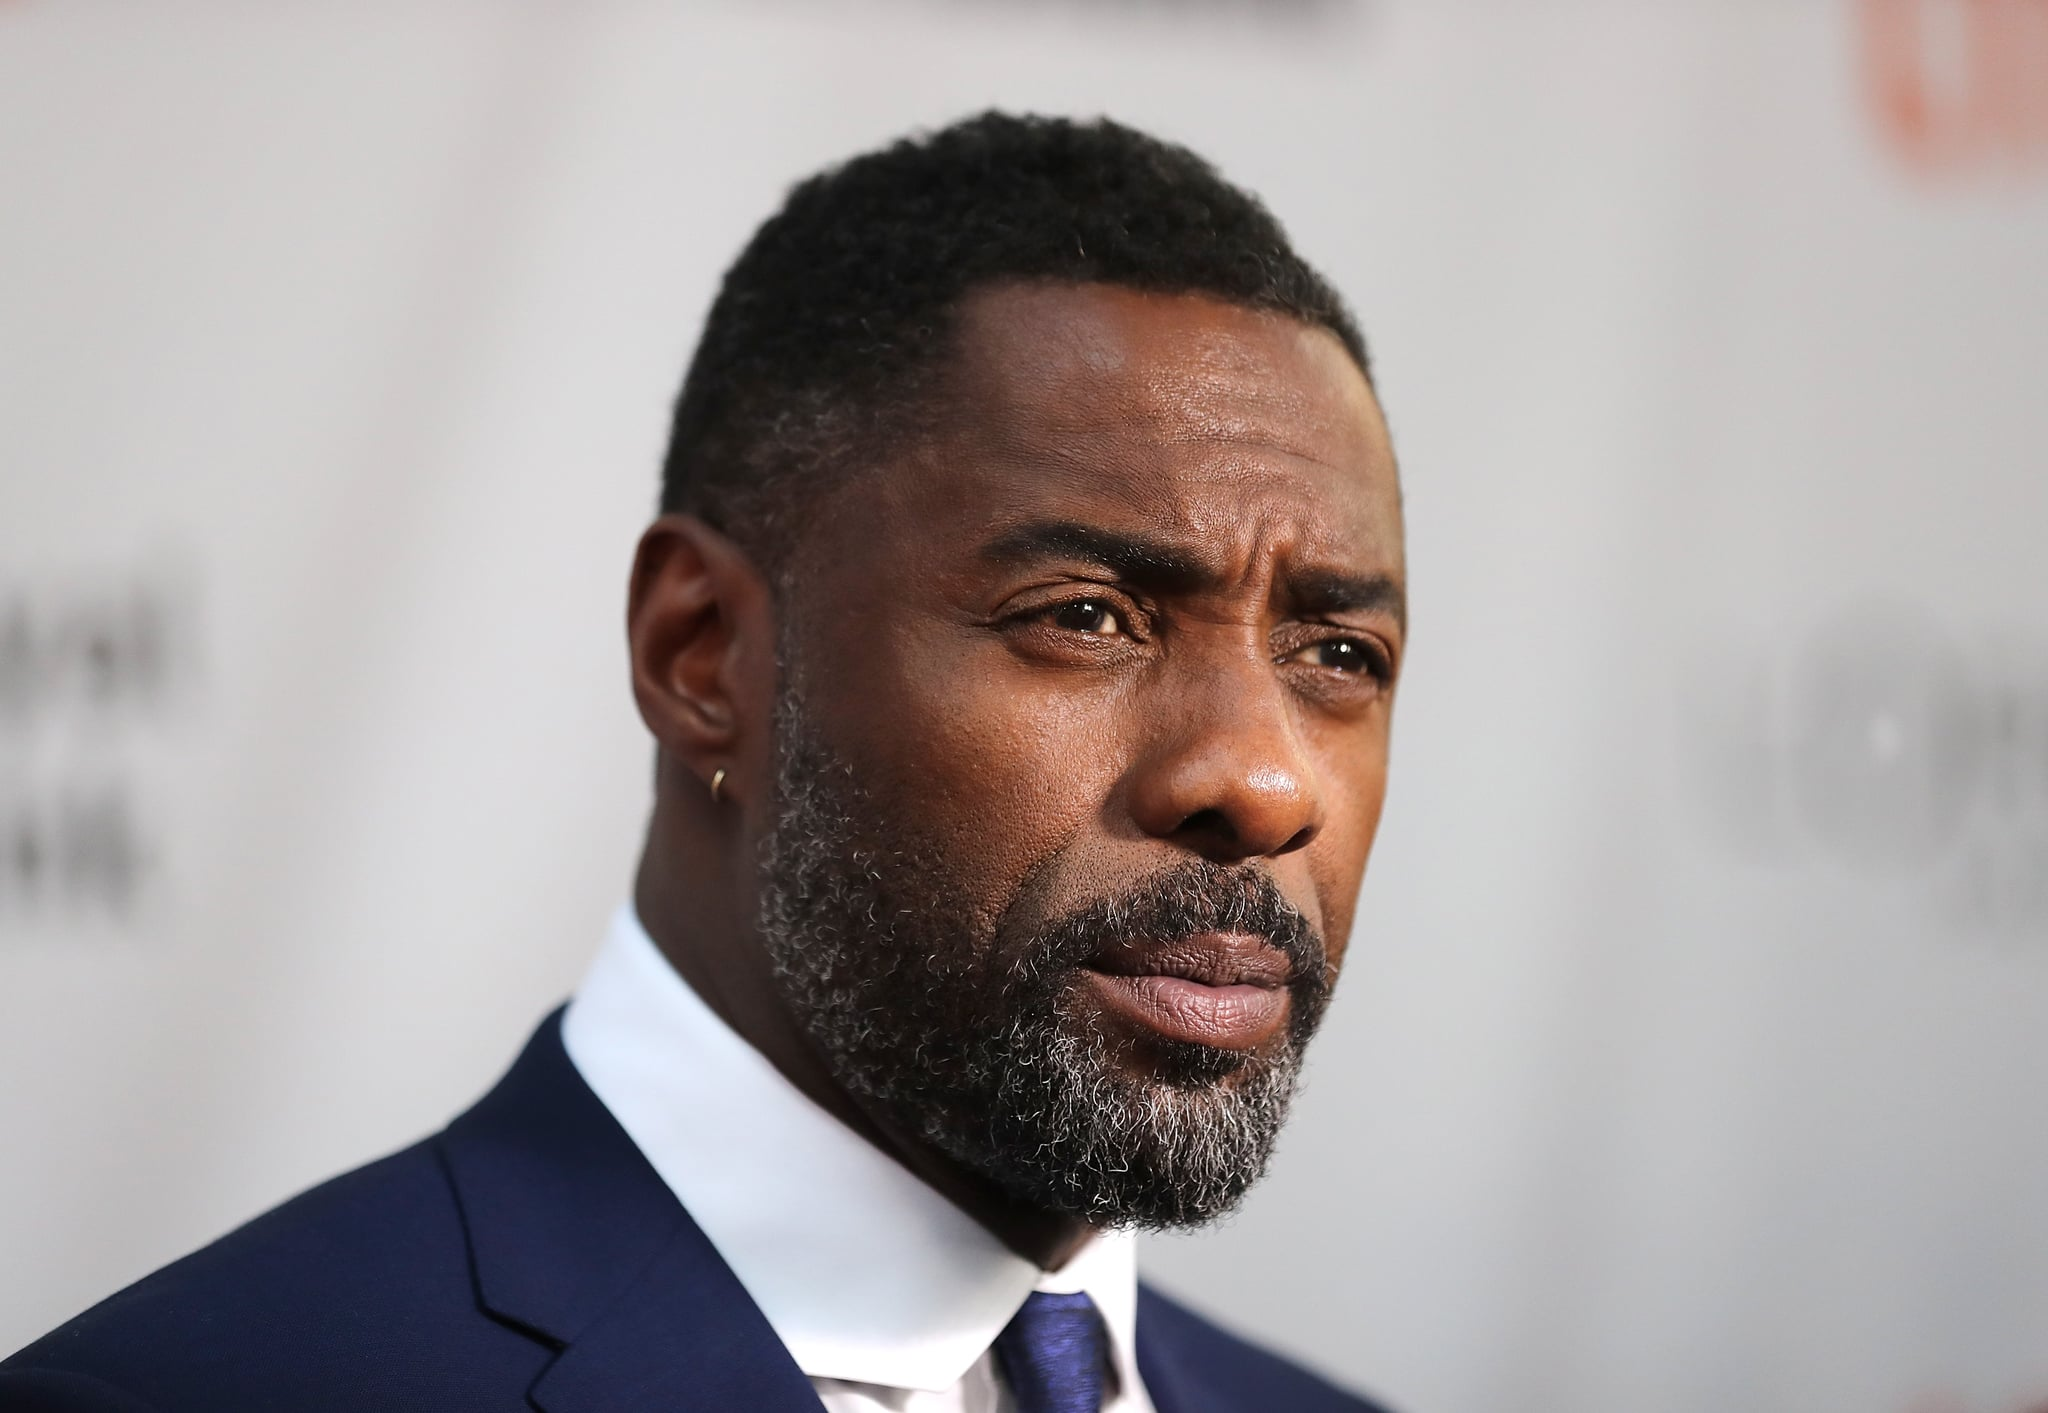 Idris Elba auditioned to play Gaston in Beauty and the Beast